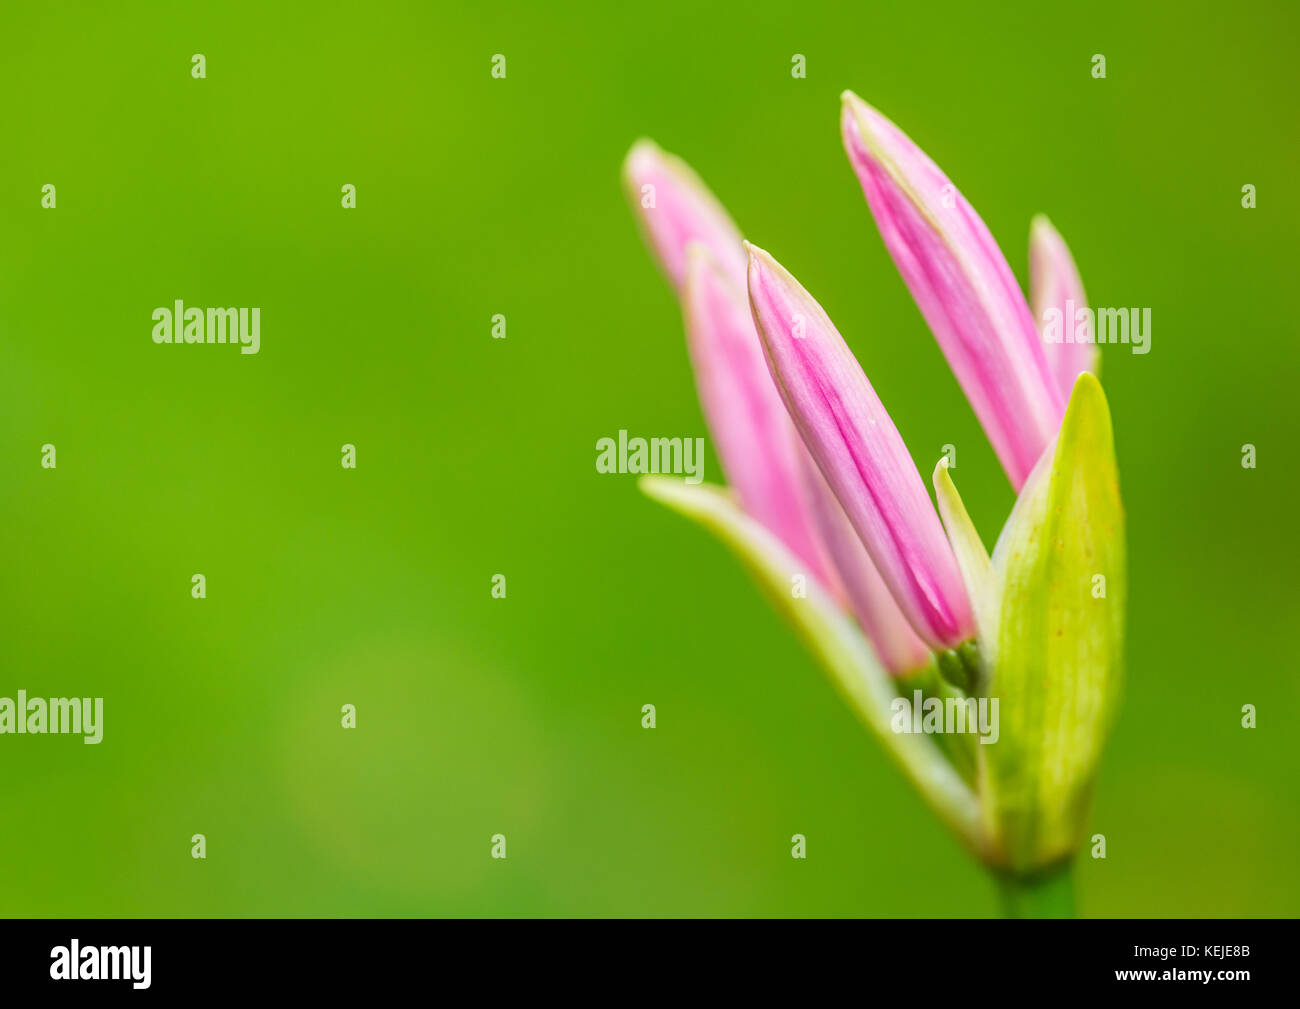 A macro shot of a nerine bowdenii flower bud showing pink petals. - Stock Image